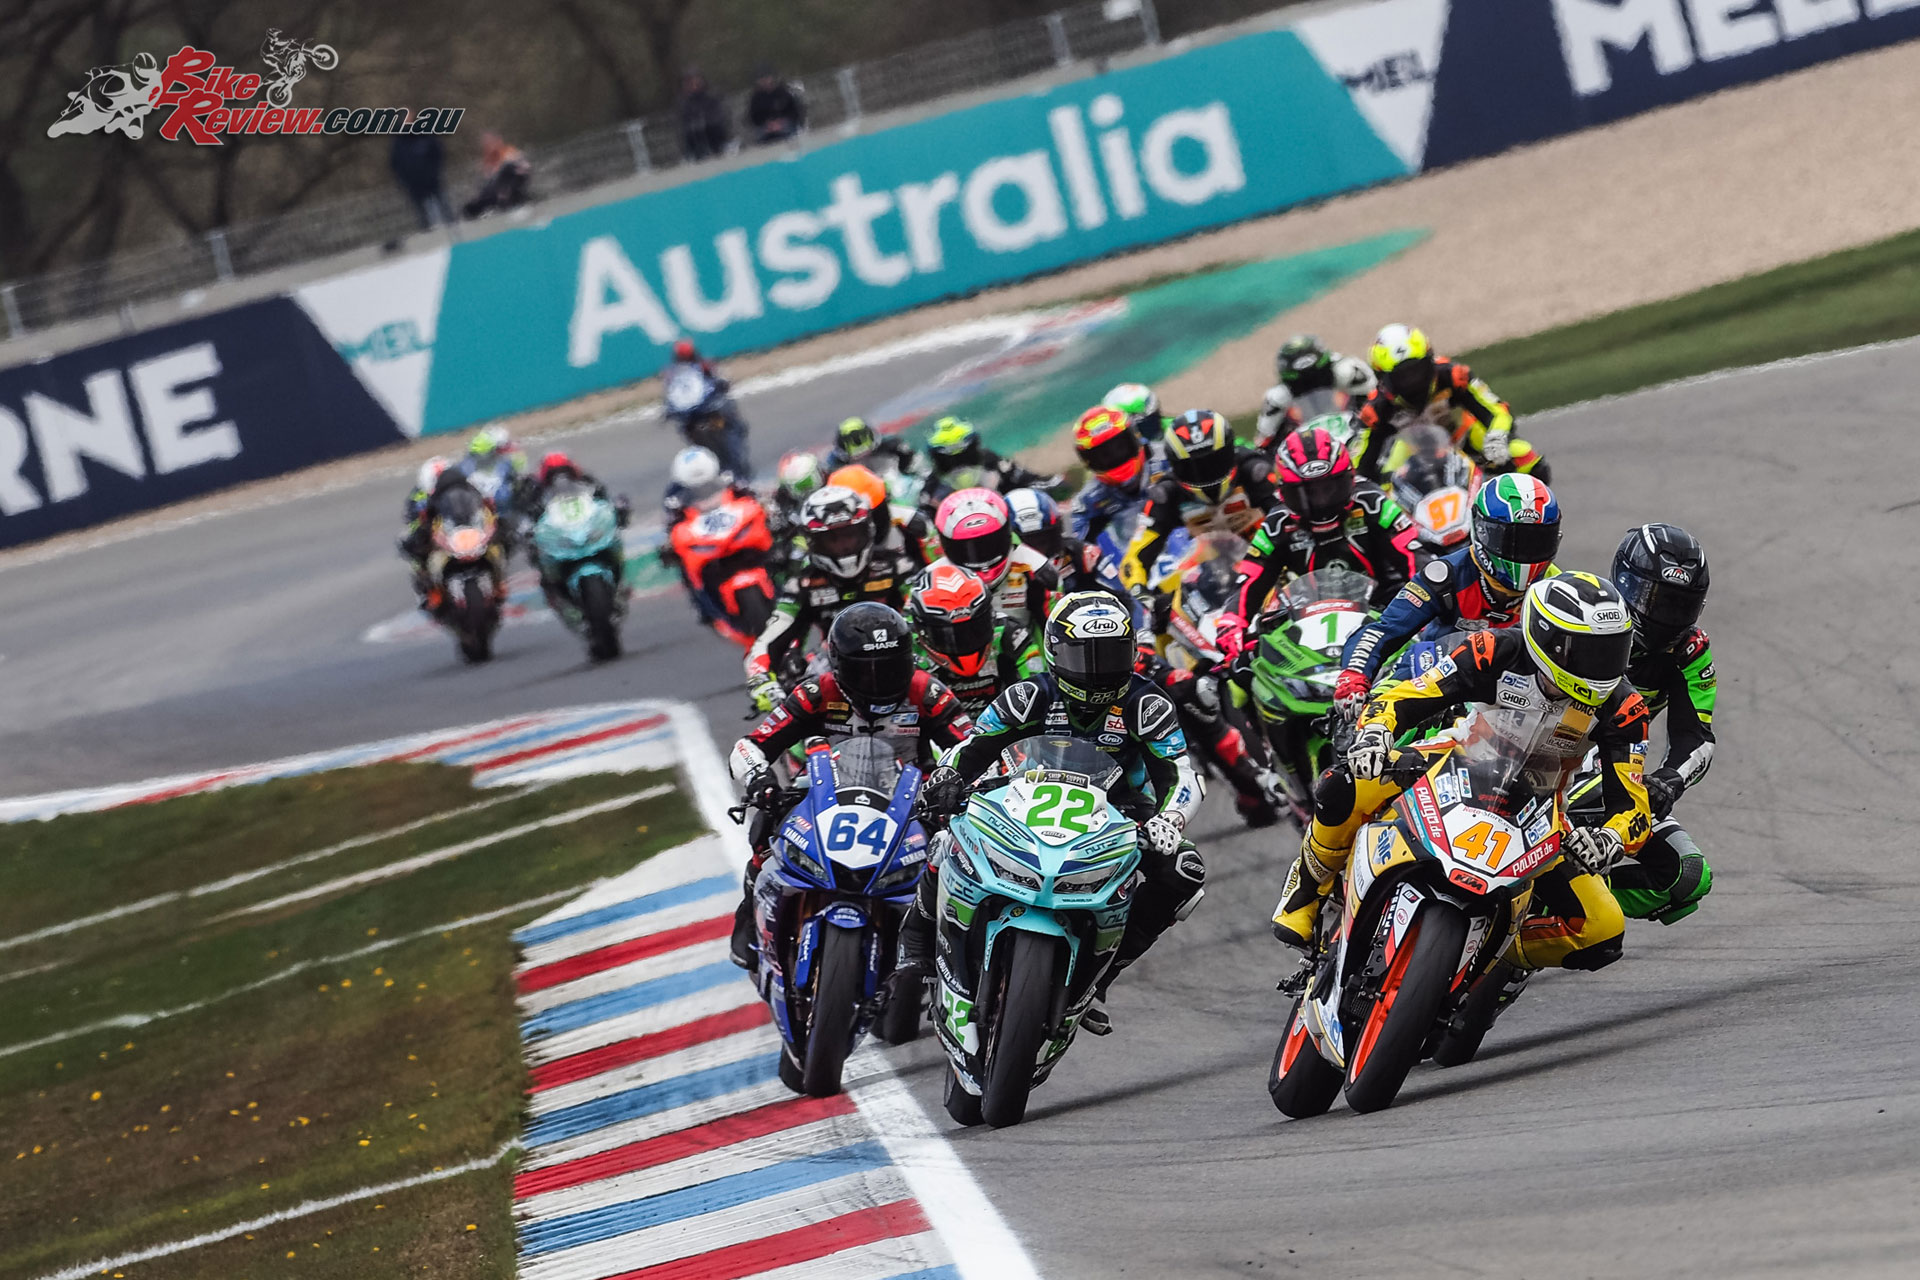 World Supersport 300 - Assen WorldSBK 2019